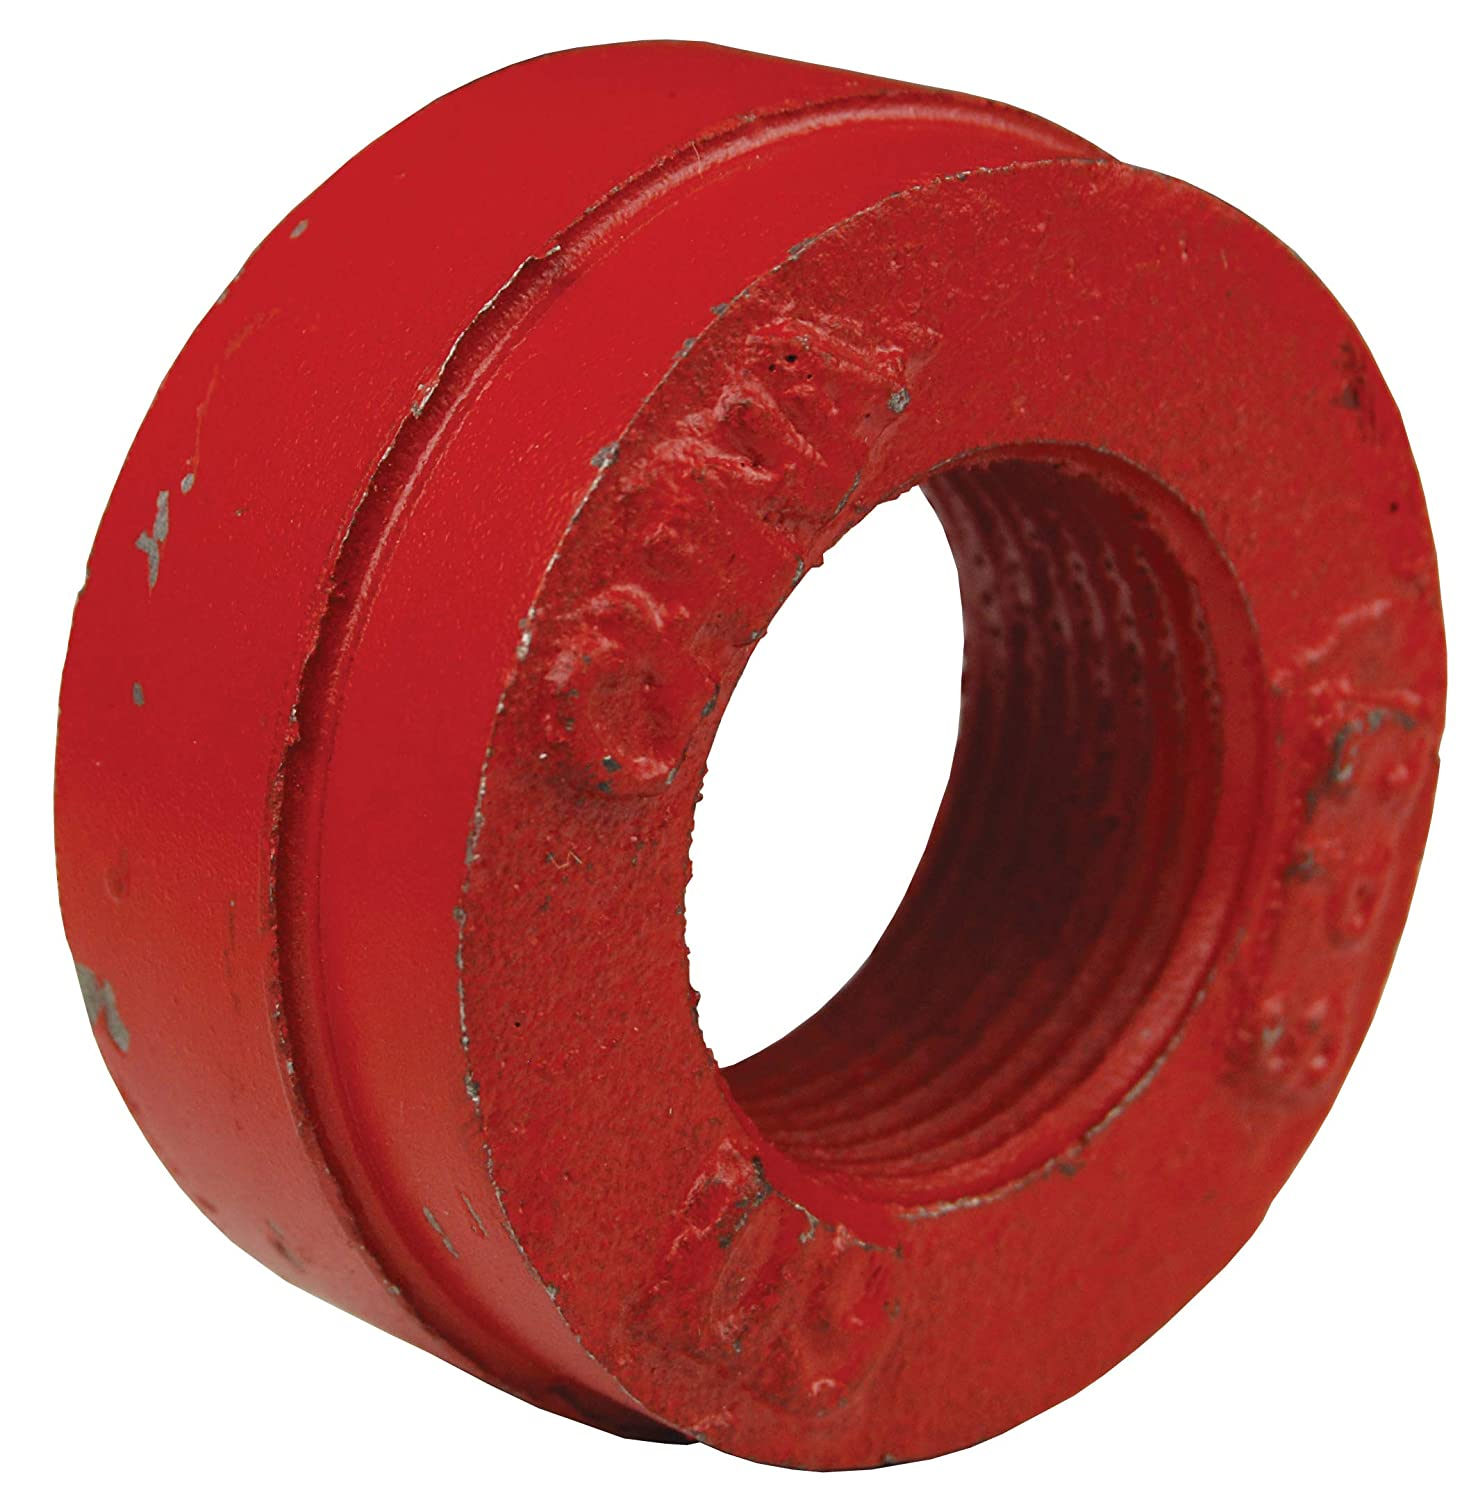 4 ID Ductile Iron 4 ID Dixon EC401 4 Nominal ANSI Cap x 1 Tapped Outlet